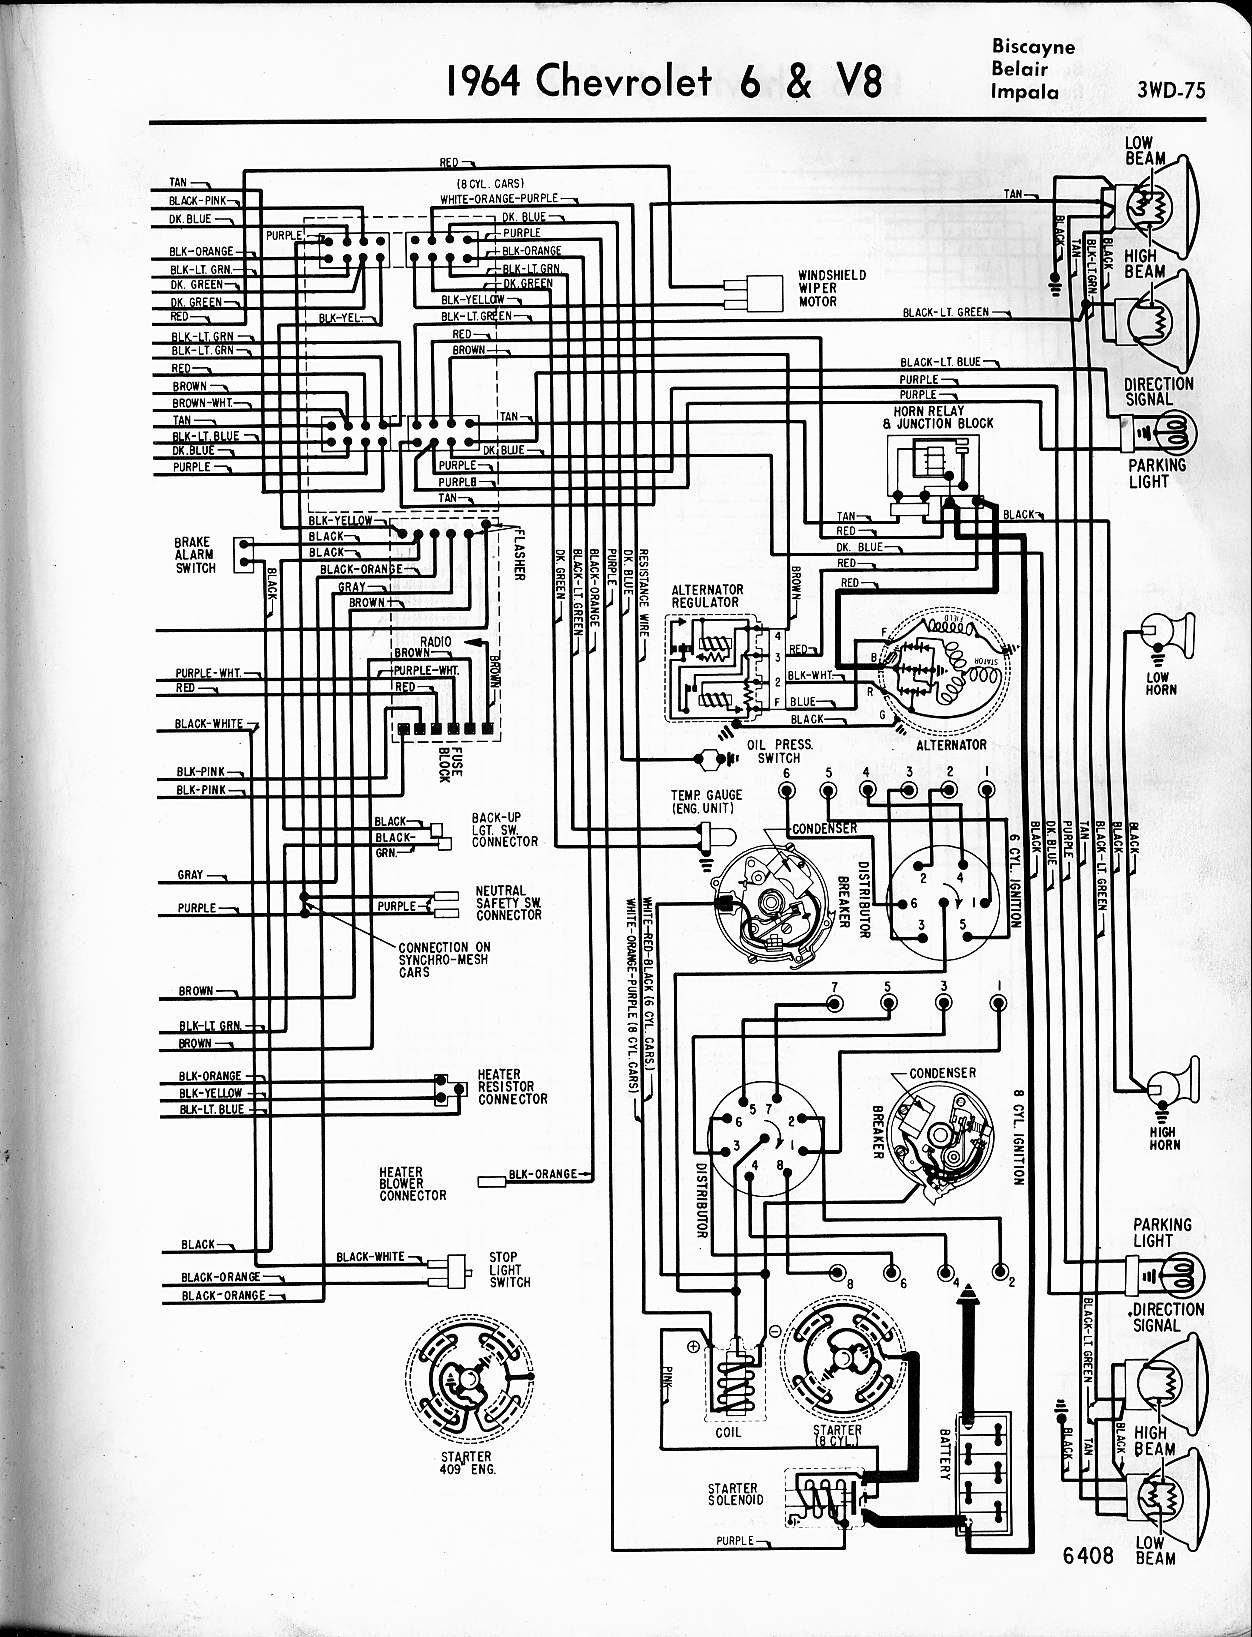 hight resolution of wiring diagram for 1964 chevy impala manual e book2002 impala ignition switch wiring diagram 16